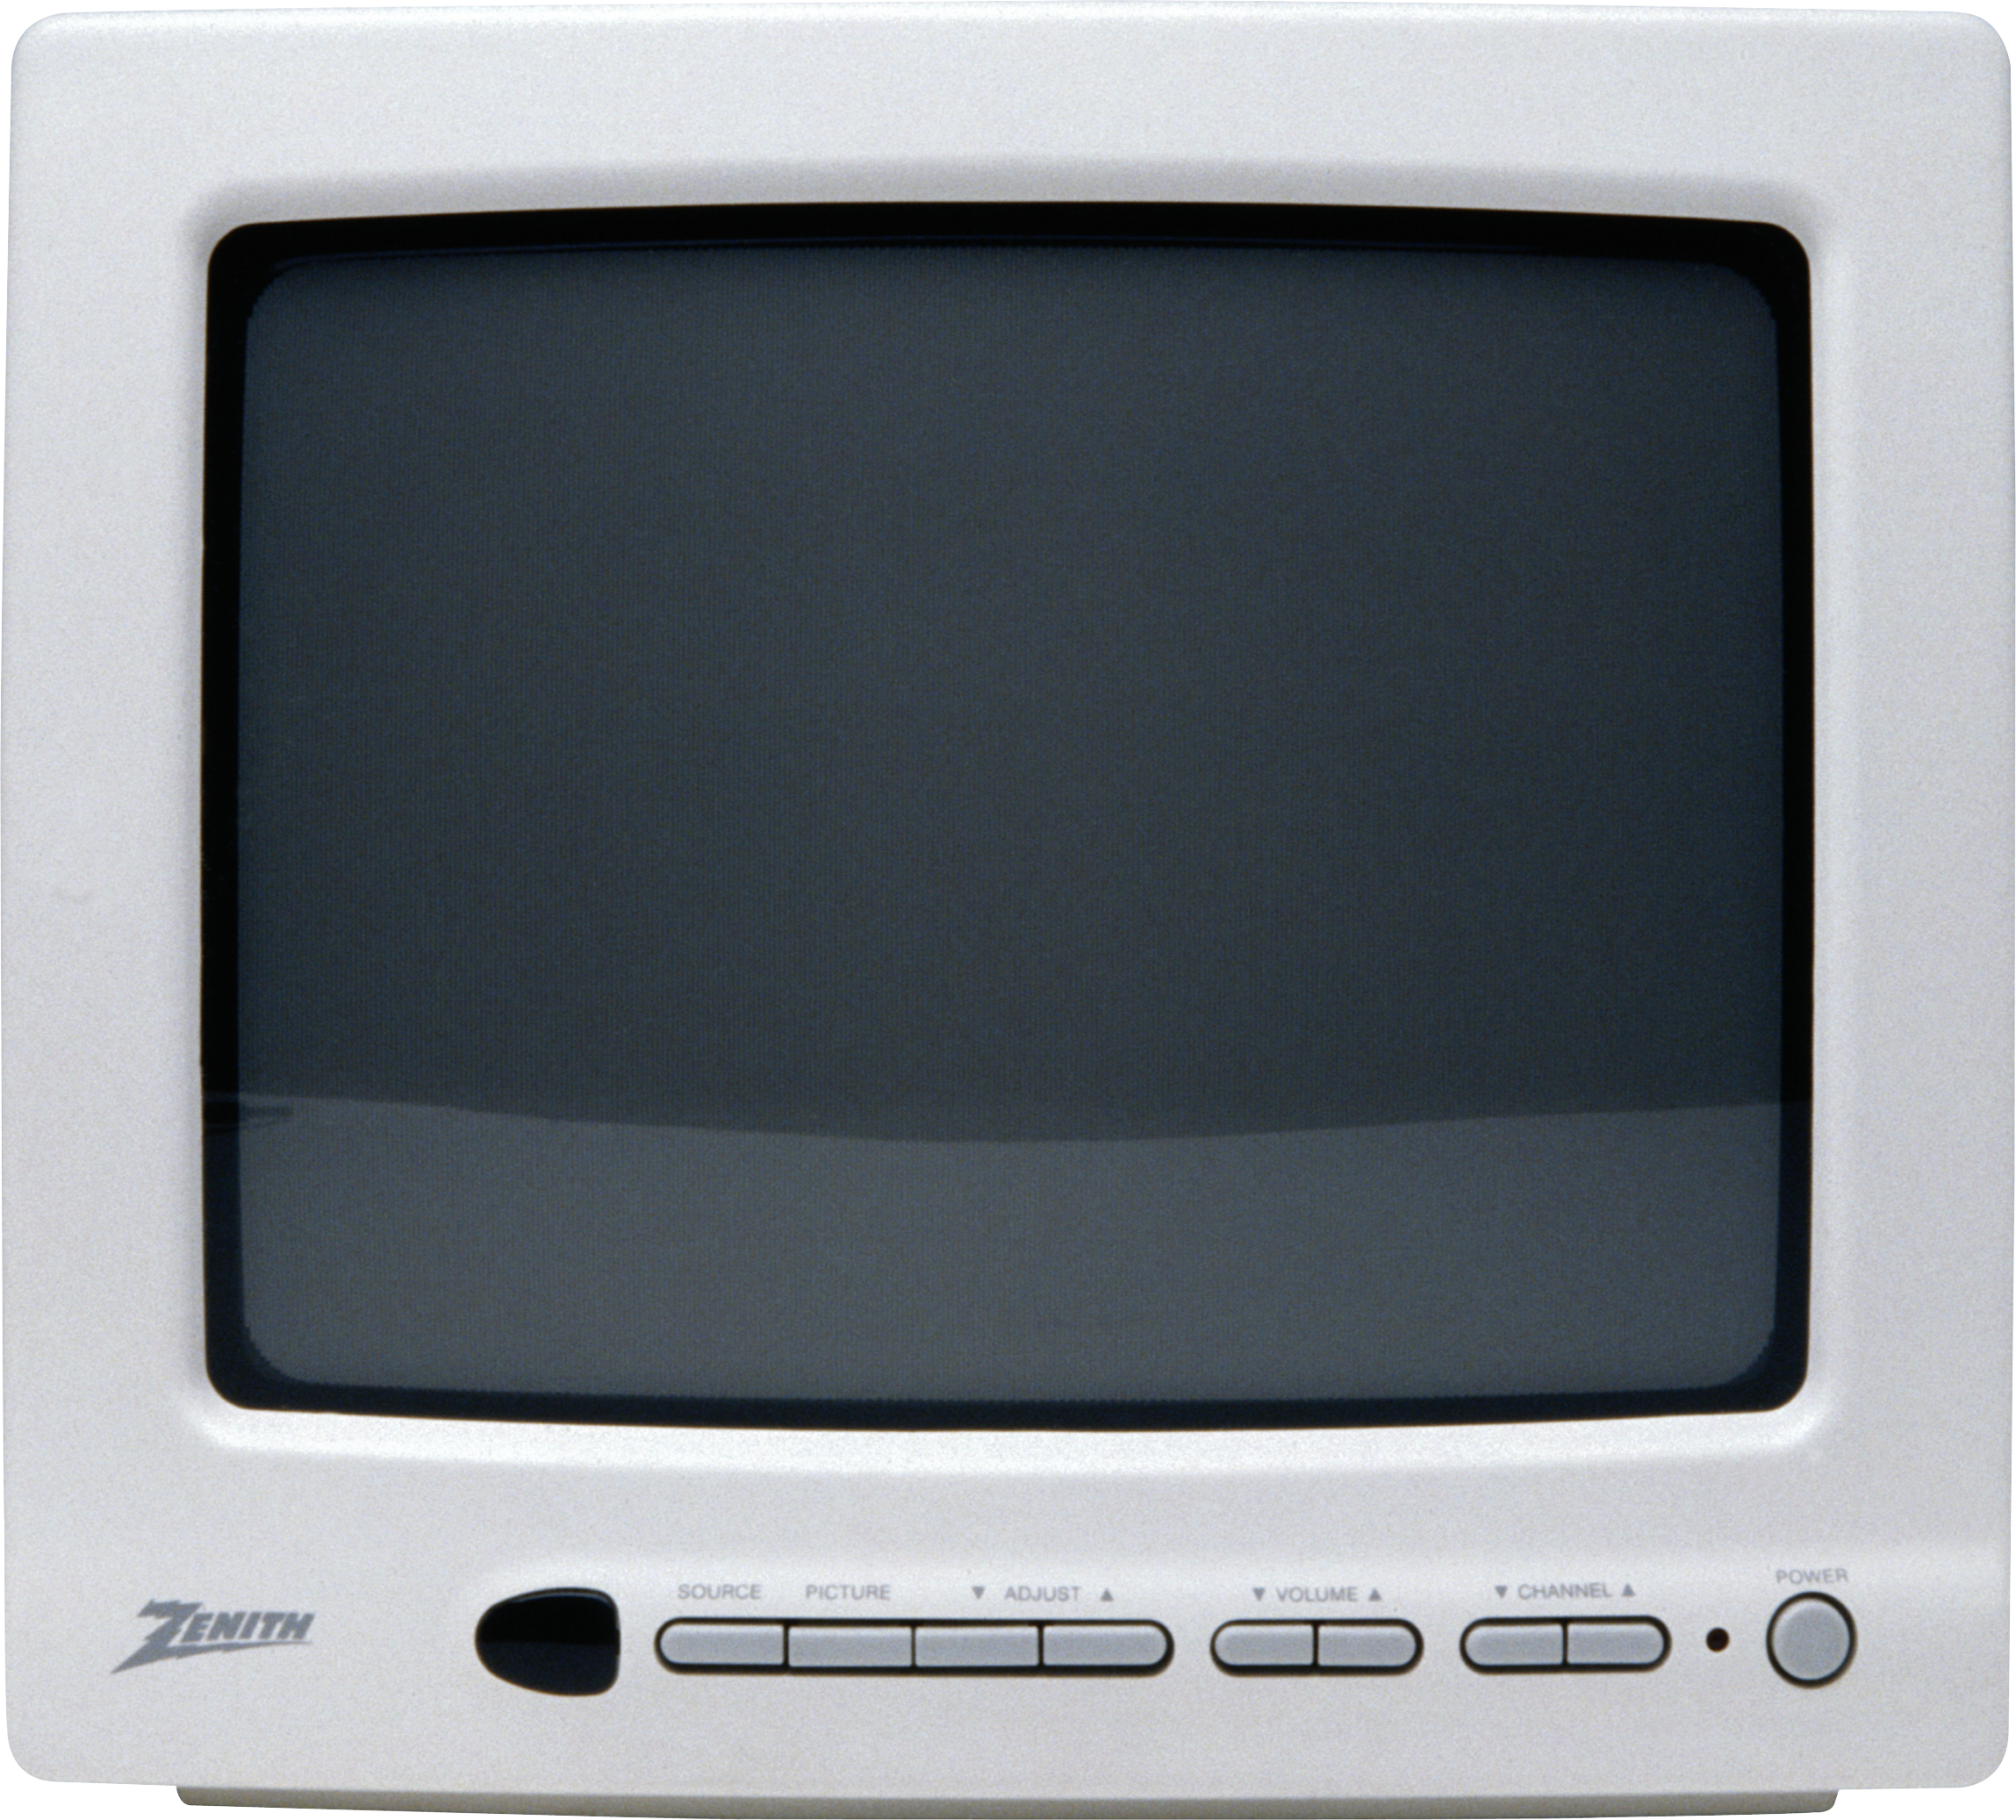 Old Television Png Image Texture Graphic Design Photo Overlays Overlays Picsart